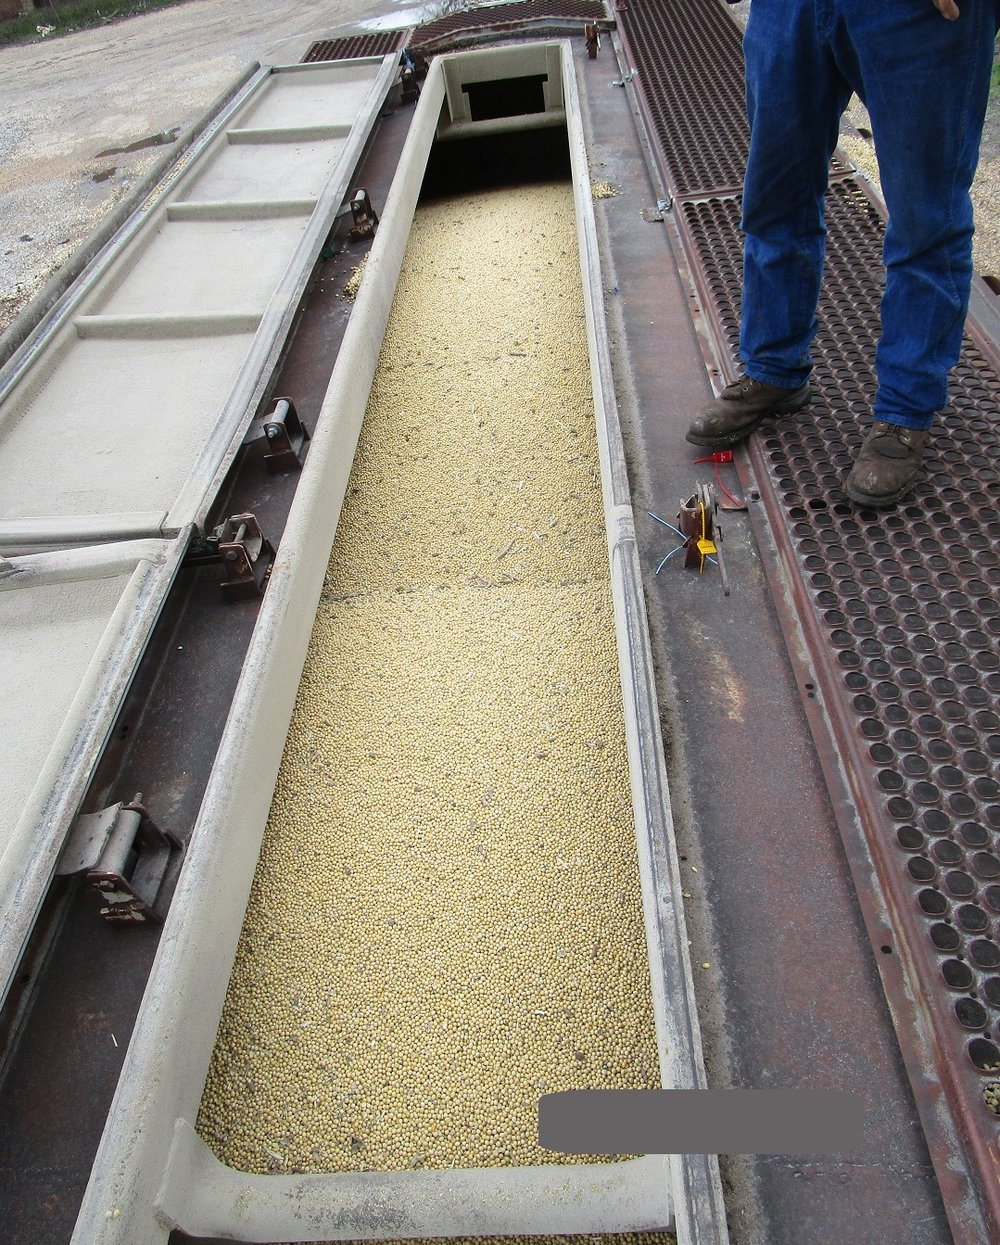 Flowables can easily be evened out across compartments for safer transport. Salvageable spilled product is carefully relocated back into the railcar.